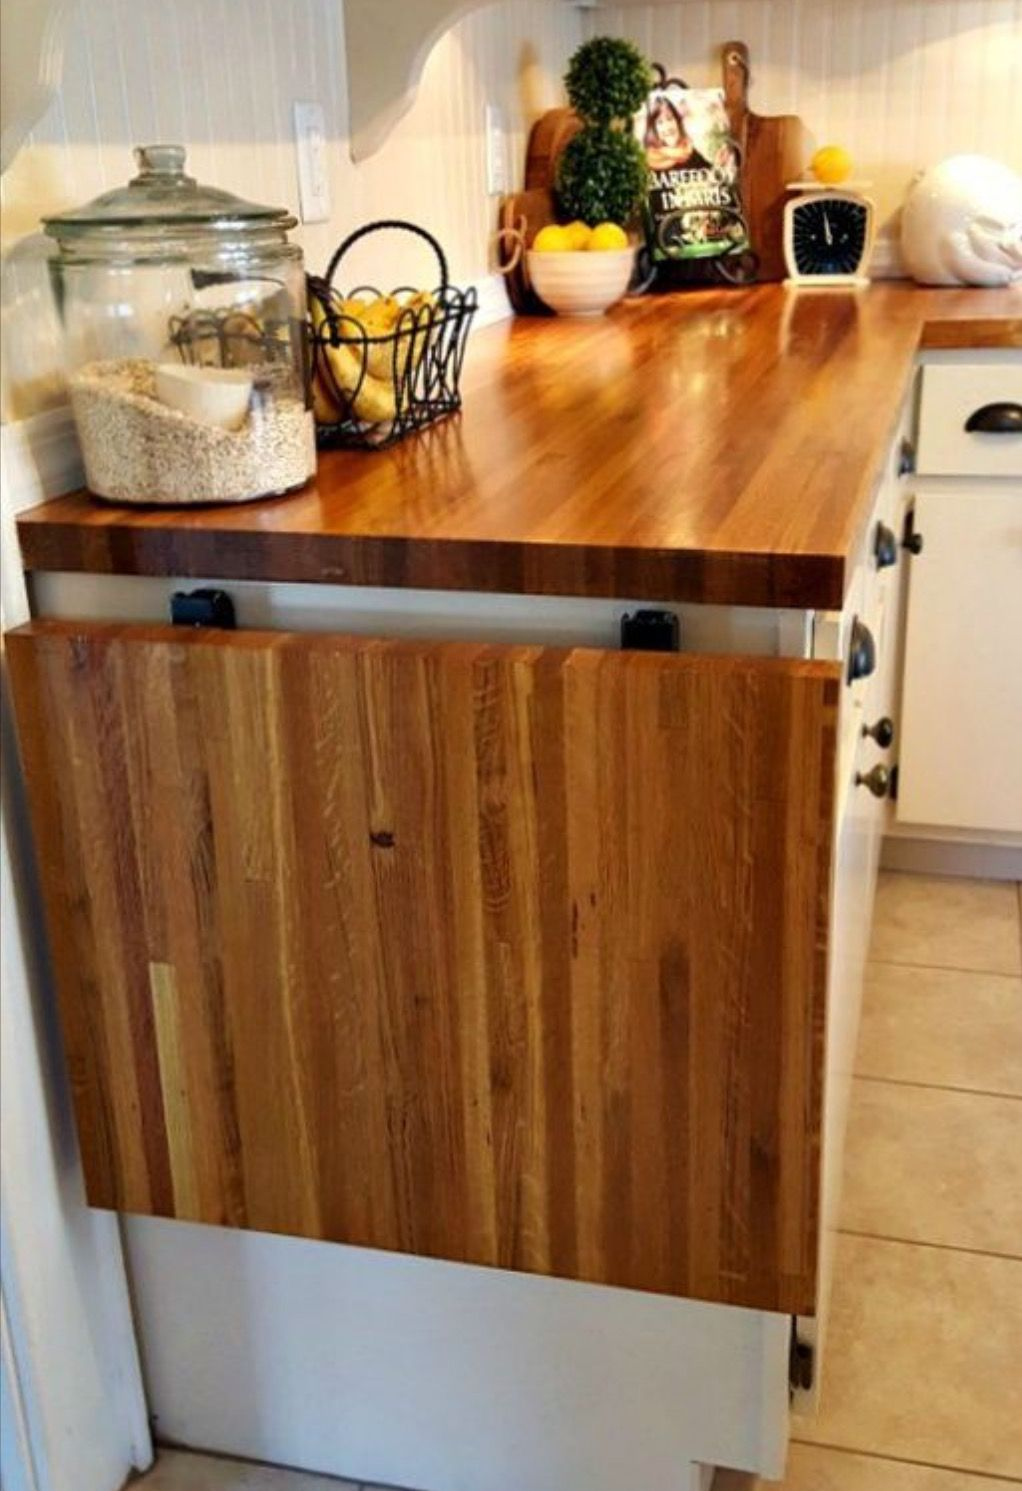 Flip Up Table At End Of Counter Kitchen Remodel Small Kitchen Design Small Kitchen On A Budget